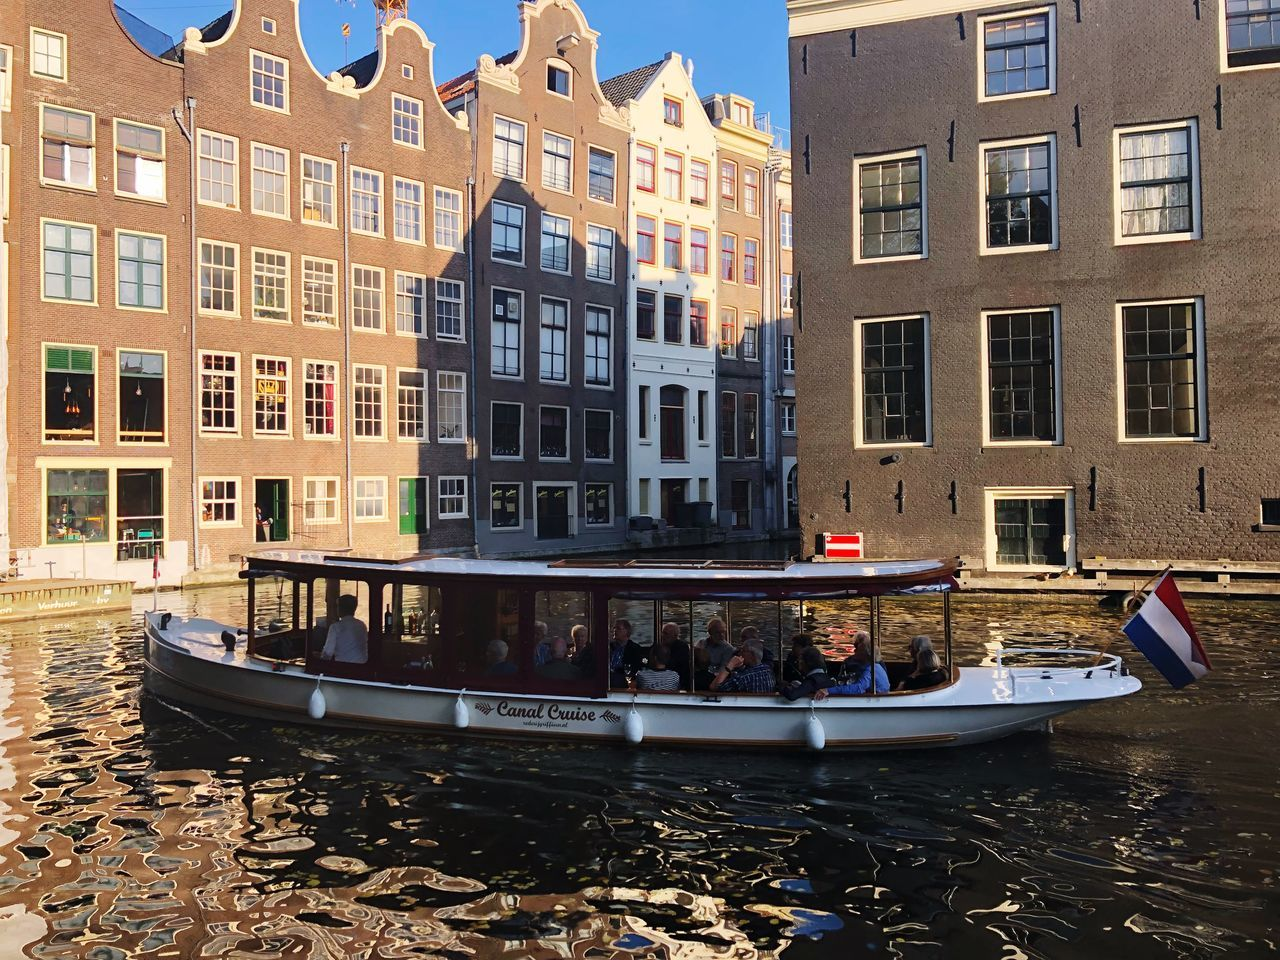 building exterior, built structure, architecture, nautical vessel, water, mode of transportation, transportation, canal, day, building, waterfront, city, moored, nature, window, travel, residential district, men, outdoors, passenger craft, row house